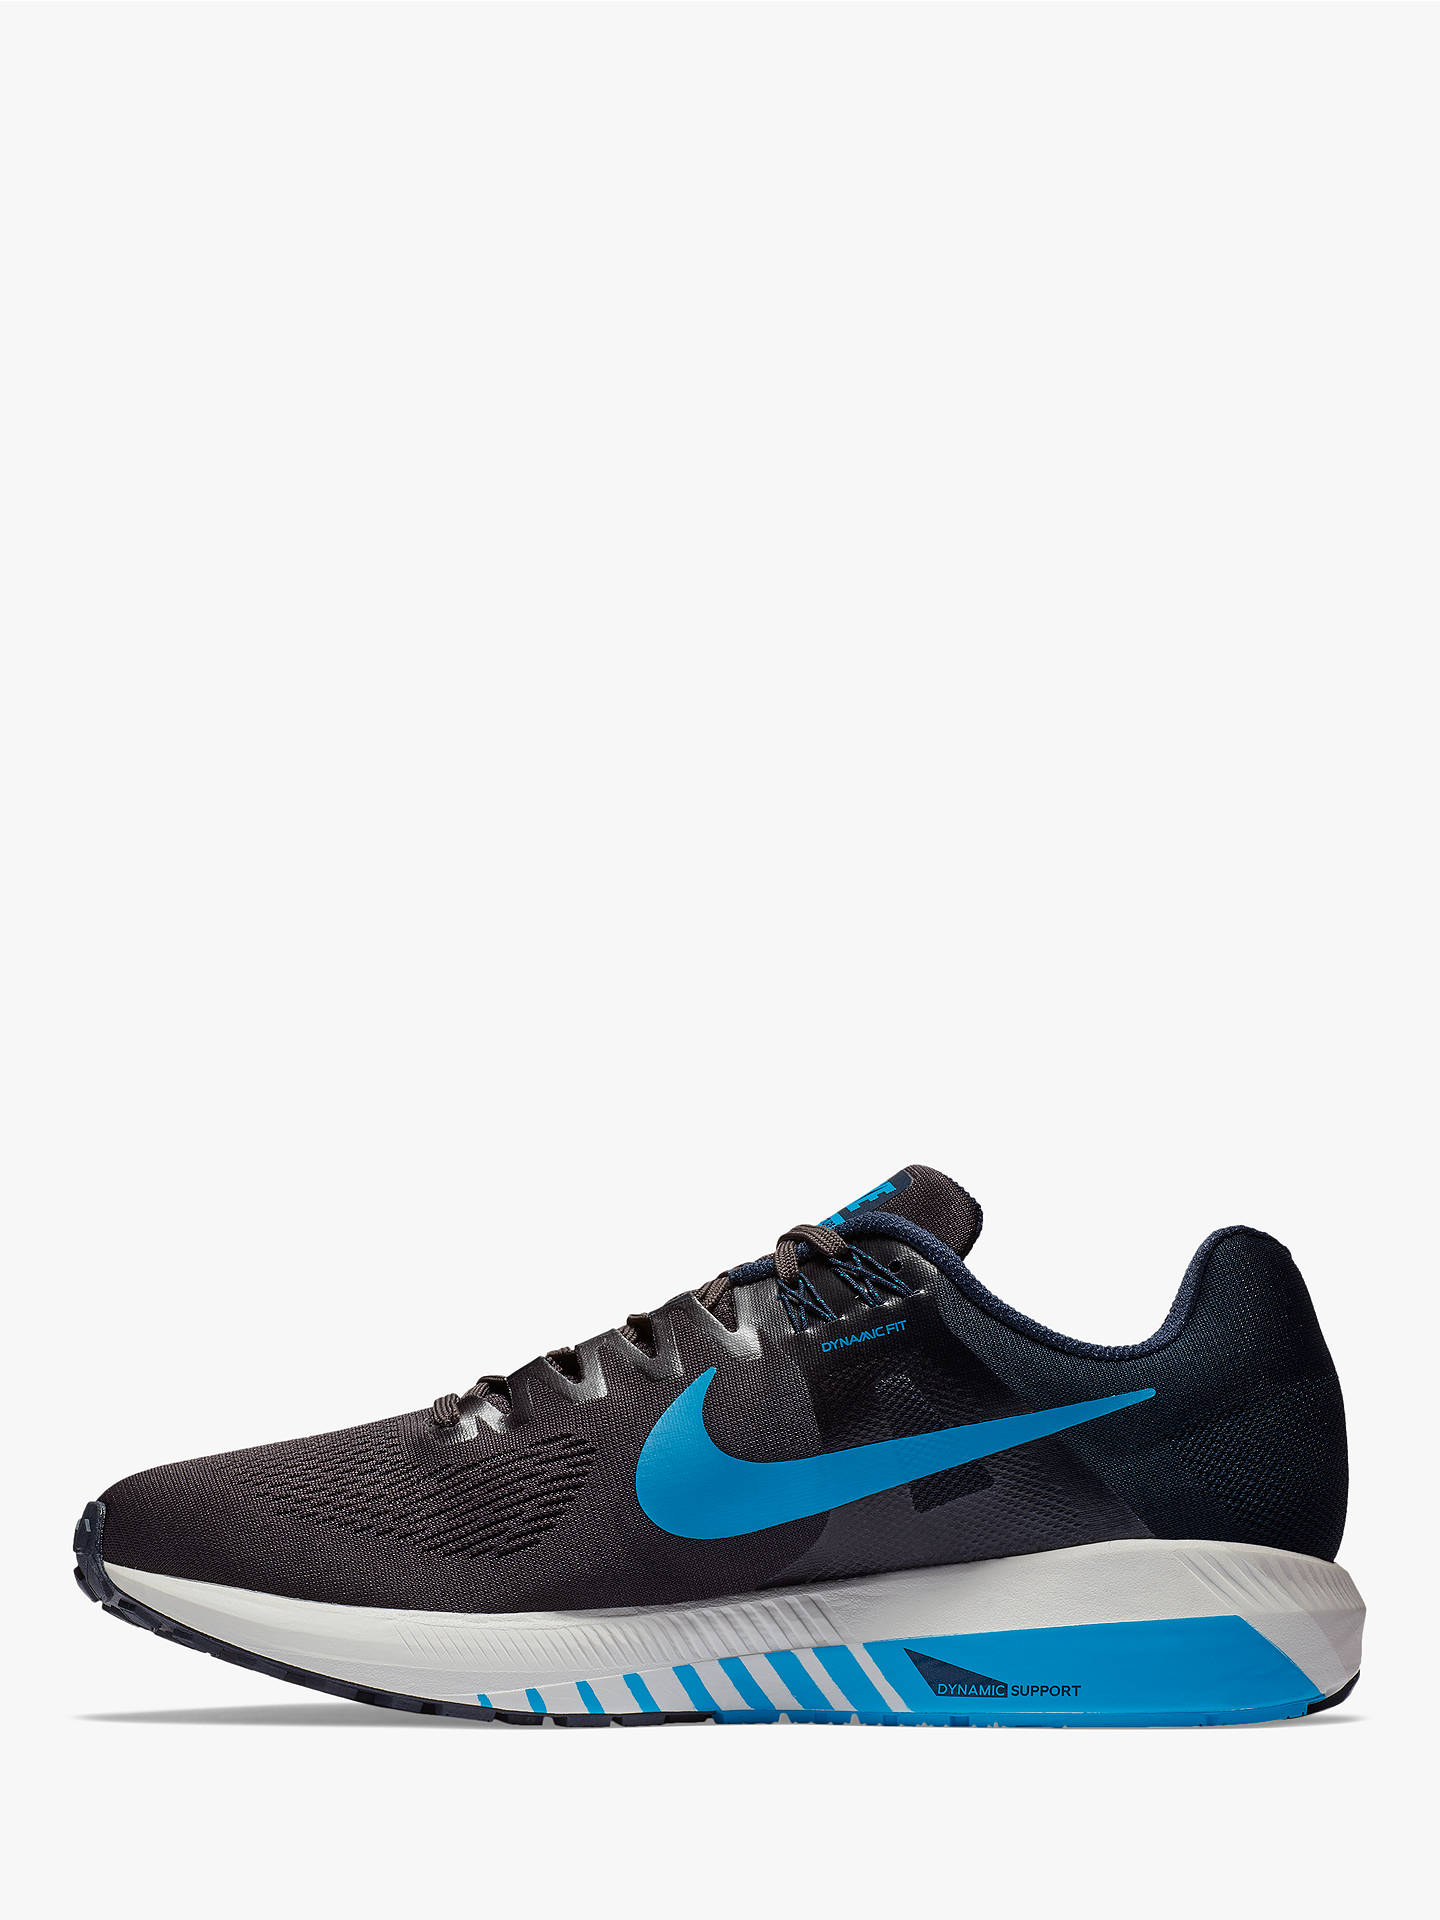 Size 9 Black Blue Men`s To Enjoy High Reputation At Home And Abroad United Nike Zoom Structure 18 Running Shoes